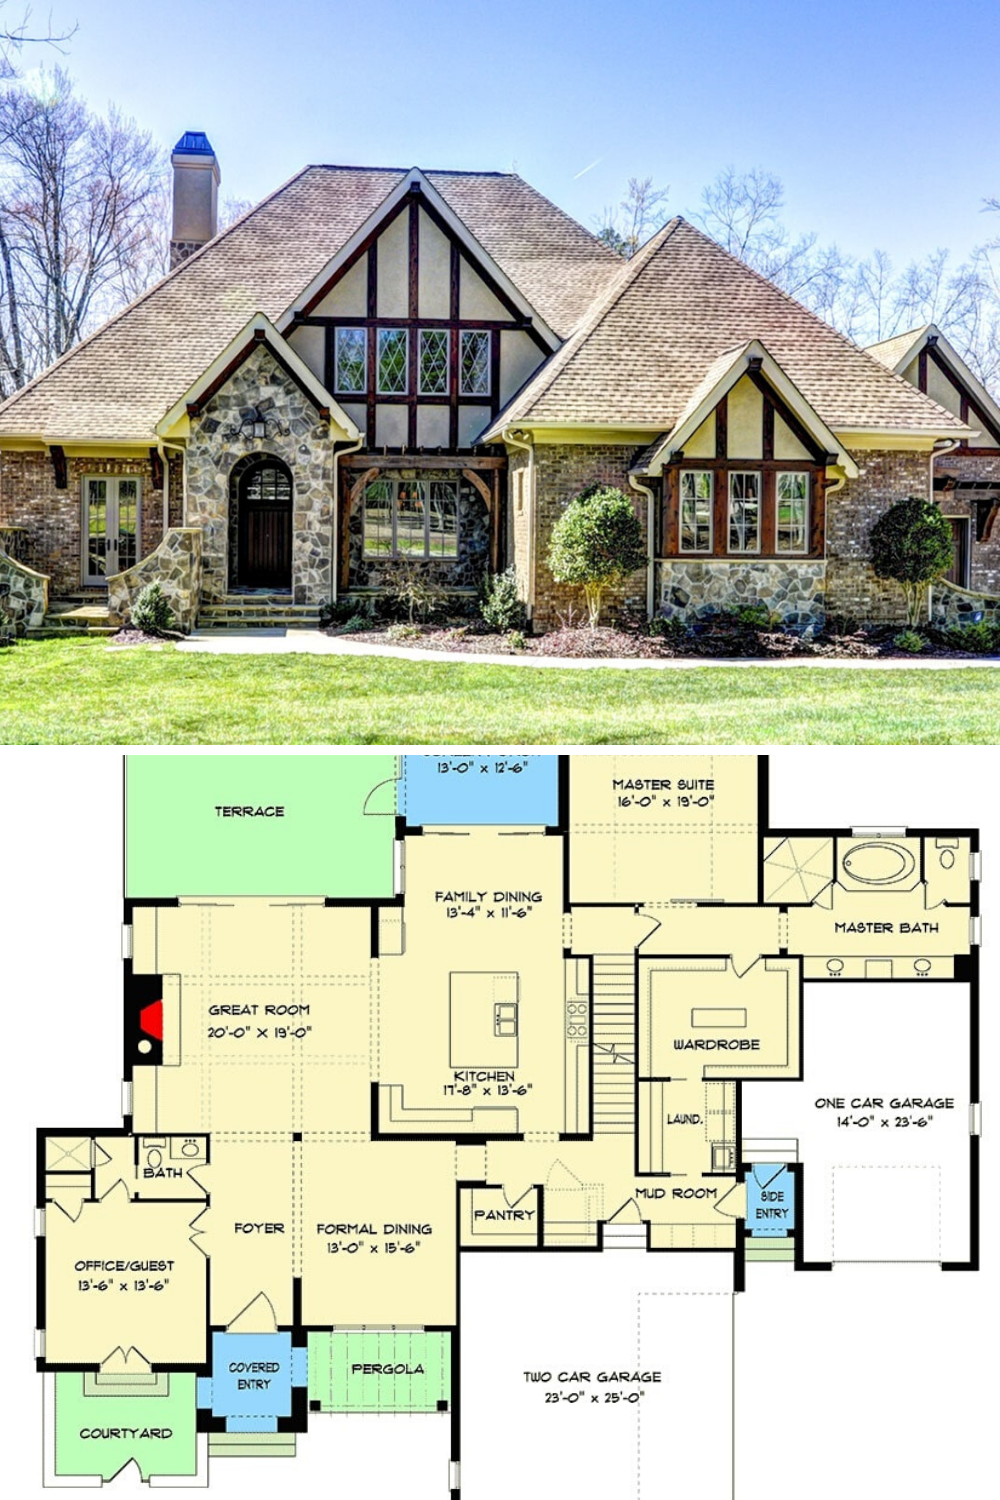 5 Bedroom Two Story Tudor Style Home With Optional Lower Level Floor Plan Tudor Style Homes Tudor House Exterior Mansion Floor Plan